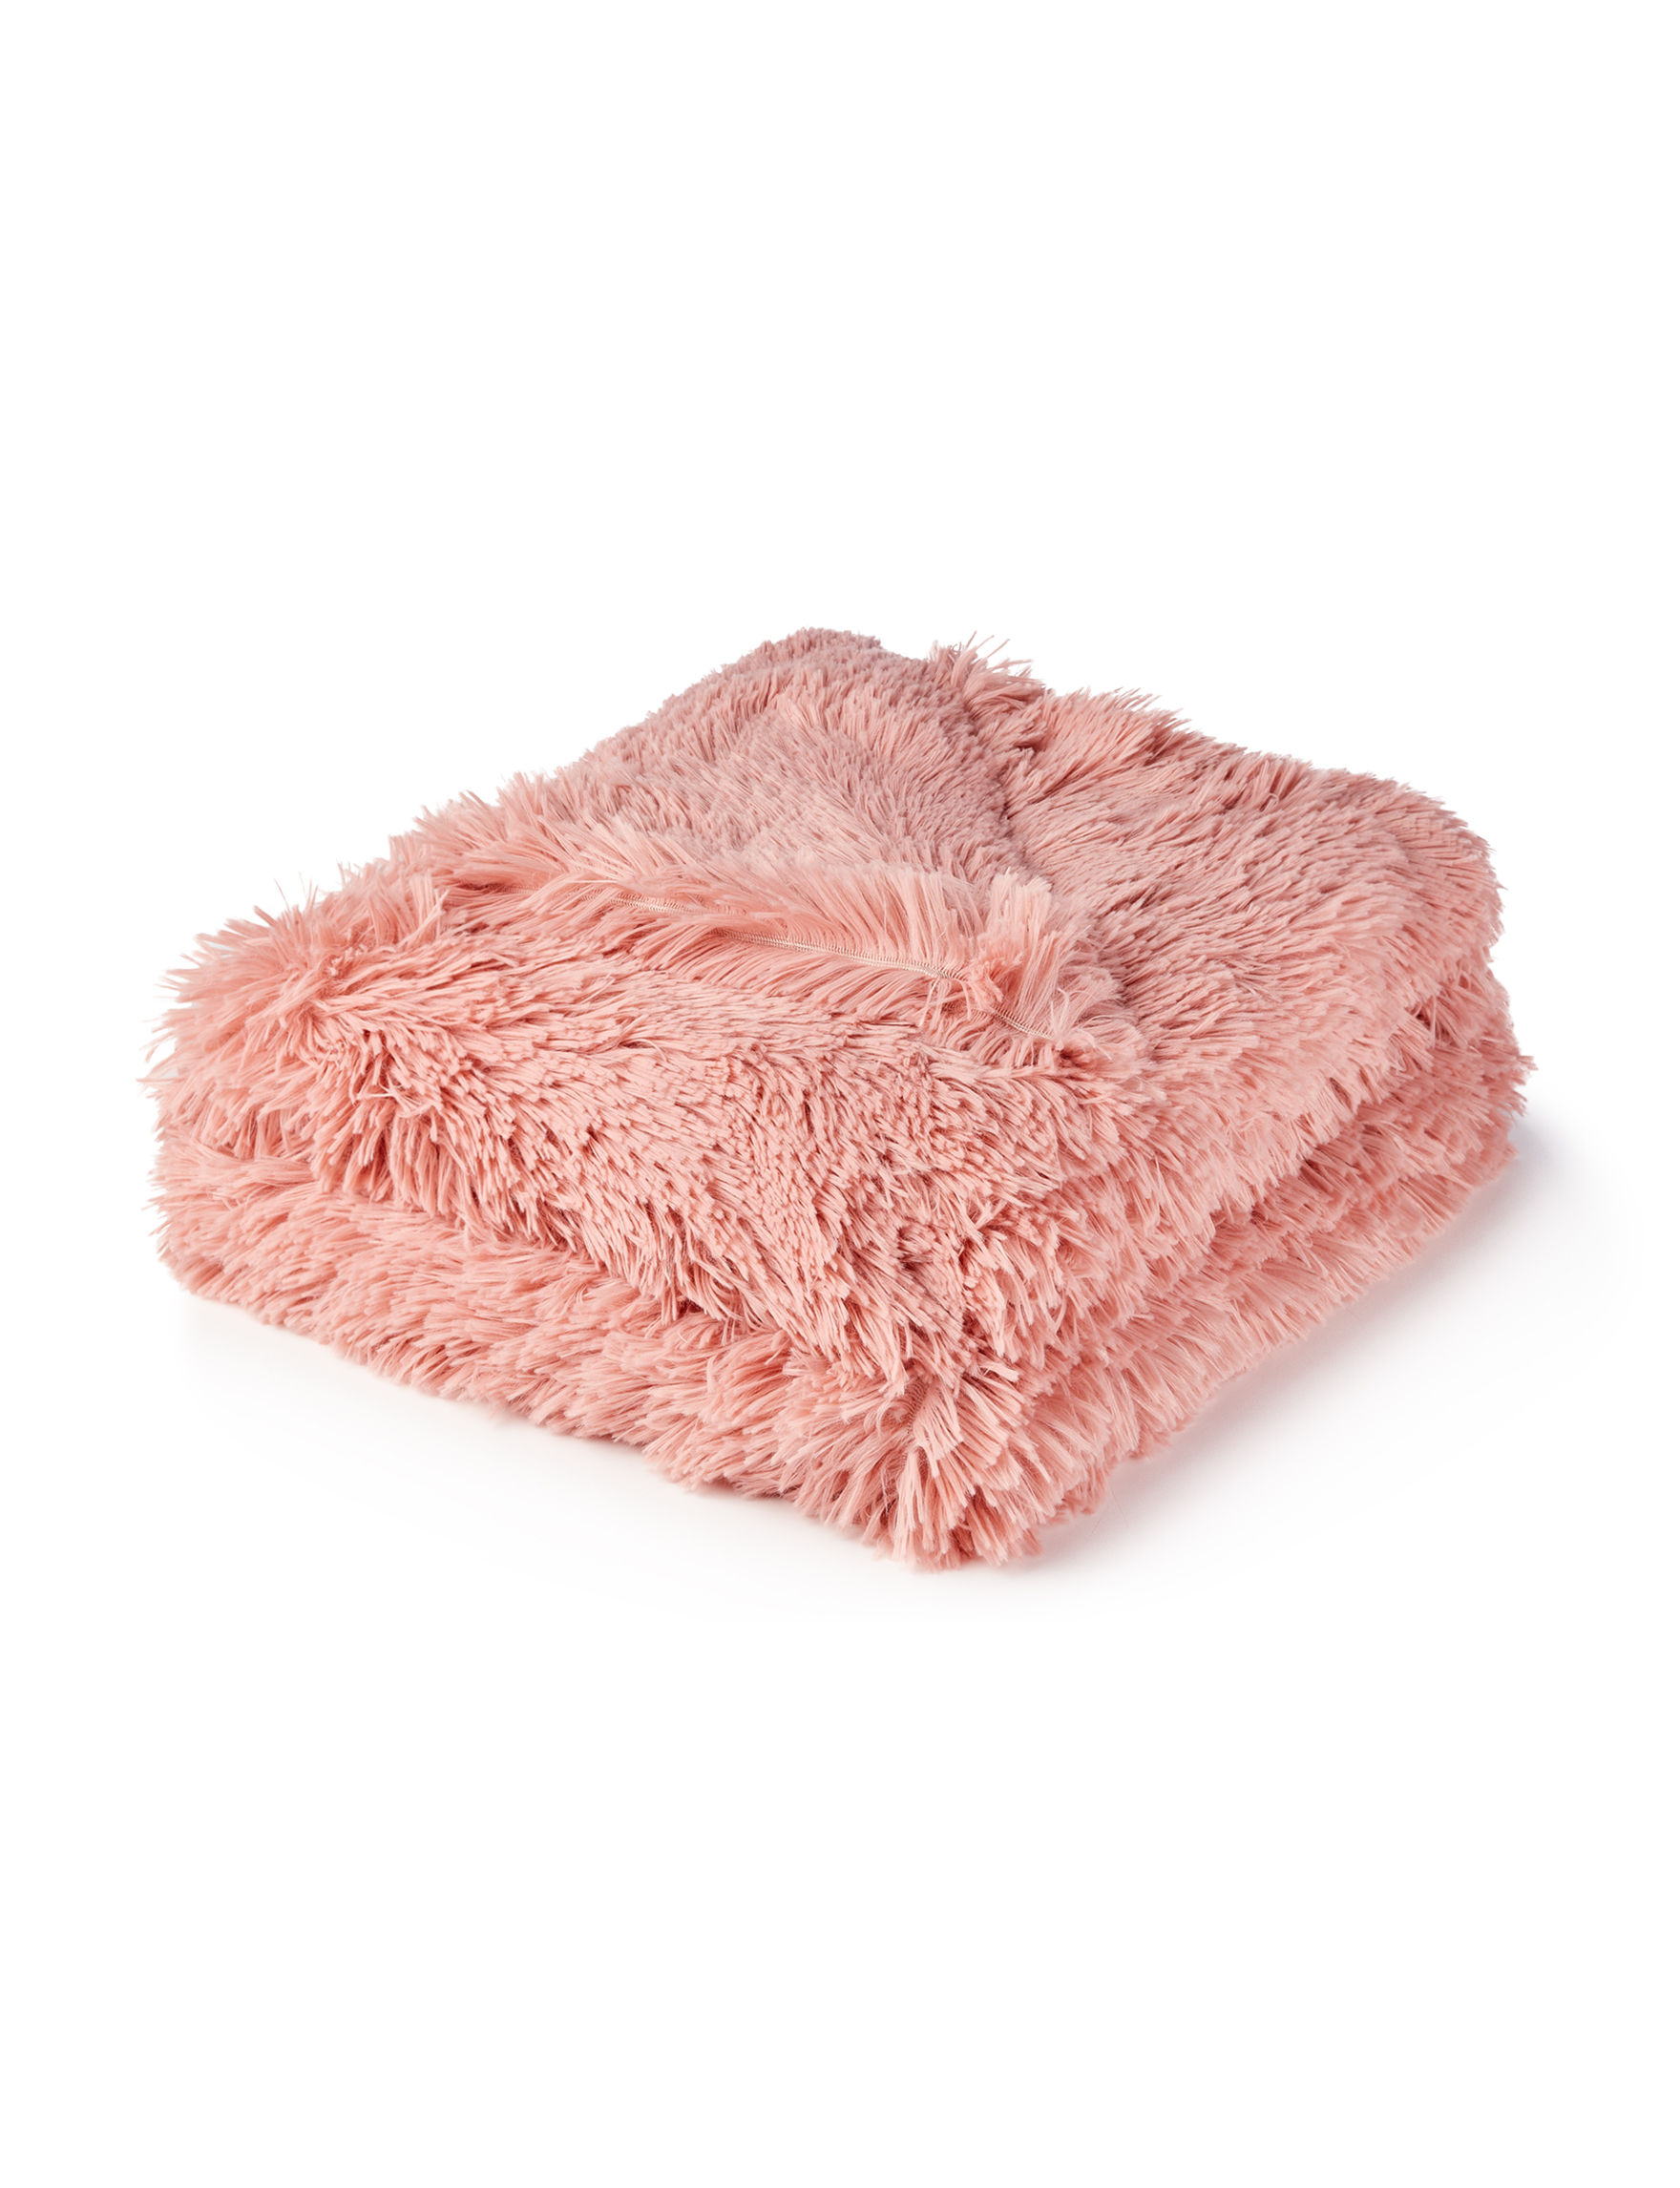 Dream Home NY Blush Blankets & Throws